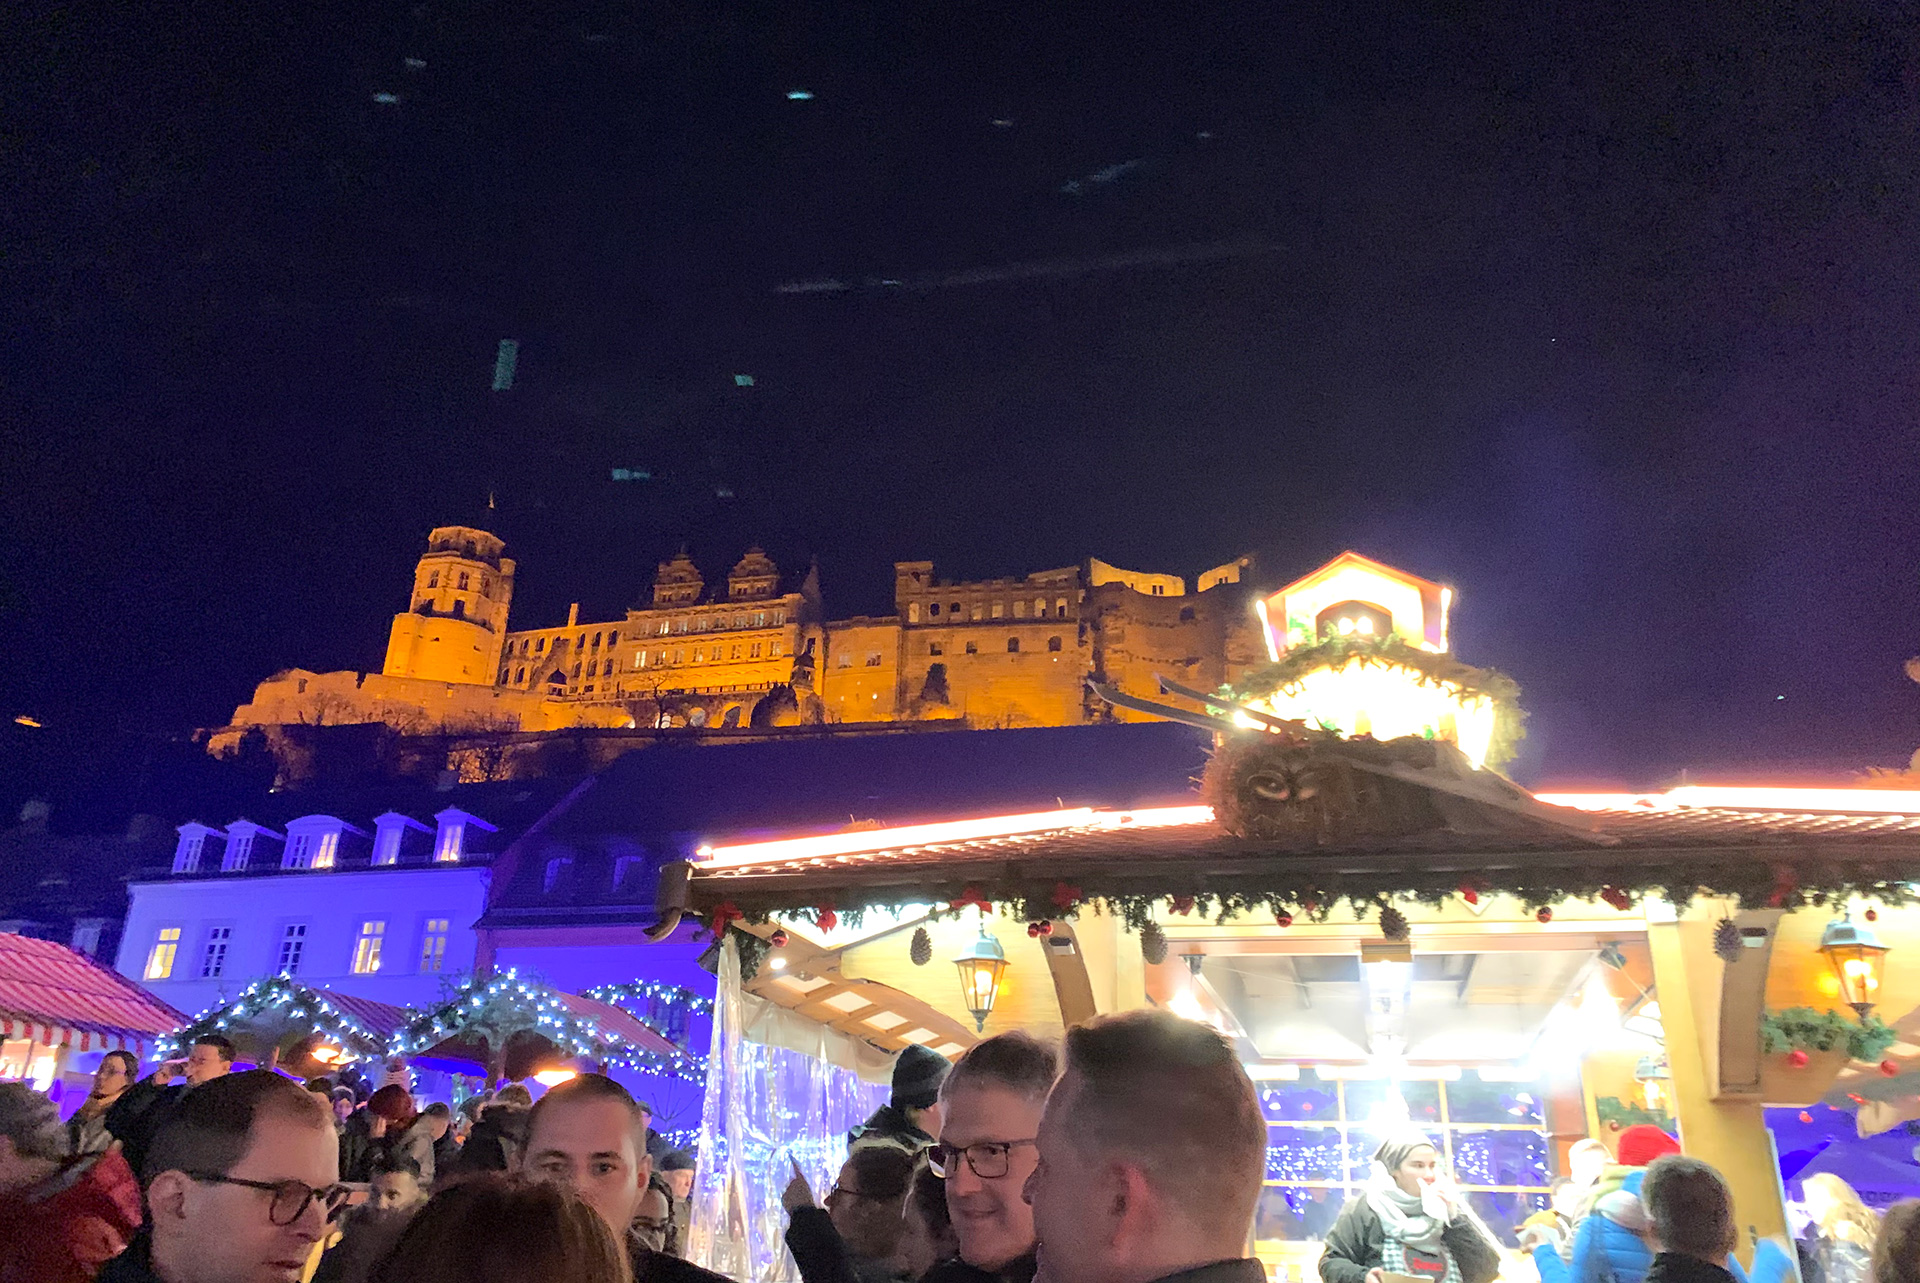 A Christmas market against the backdrop of the castle in Heidelberg | Christmas Market | Heidelberg | STIRworld